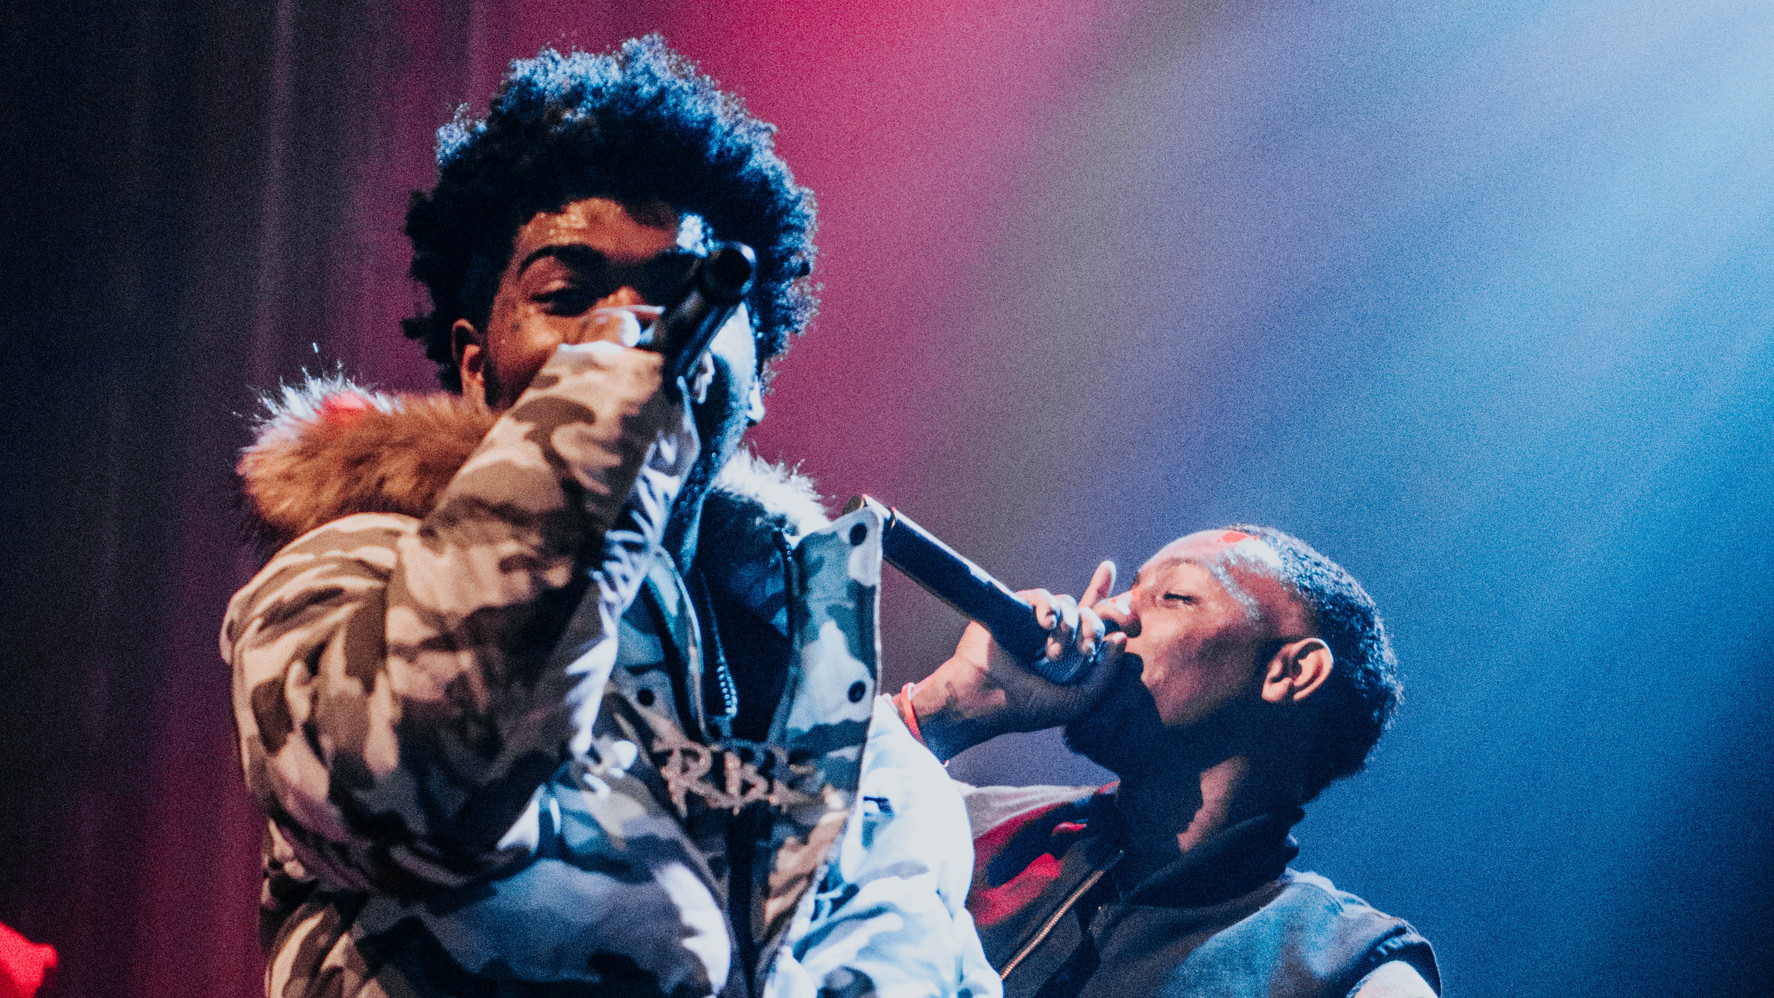 12.27.19 - SOB x RBE | Regency Ballroom, SF, CA | Photographer: Jason Jeong  - Goldenvoice